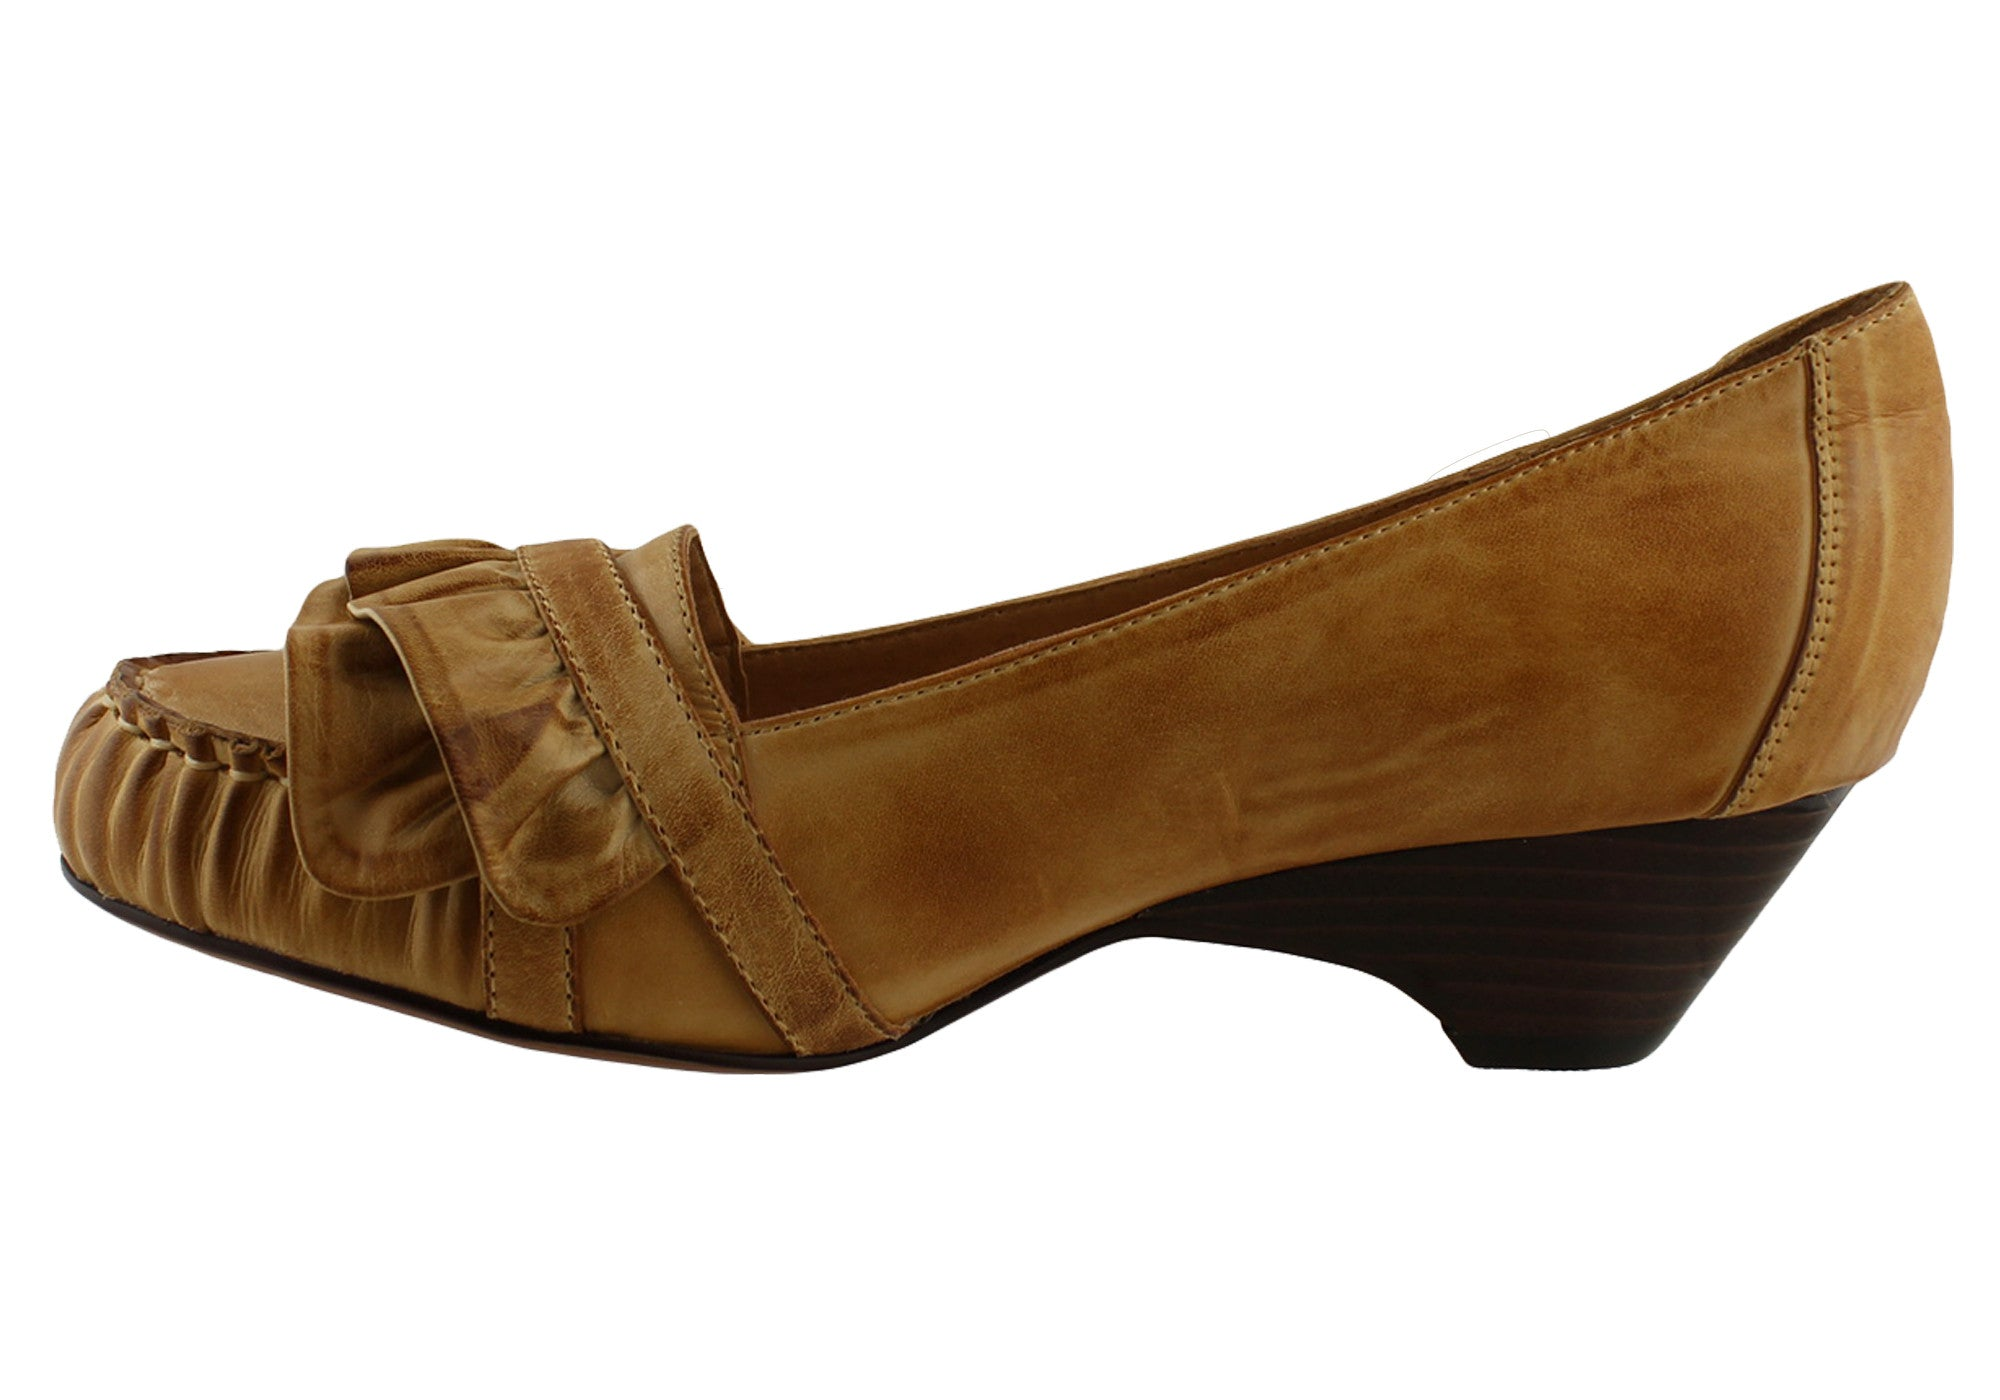 Birthmark Roslow Womens Leather Shoes